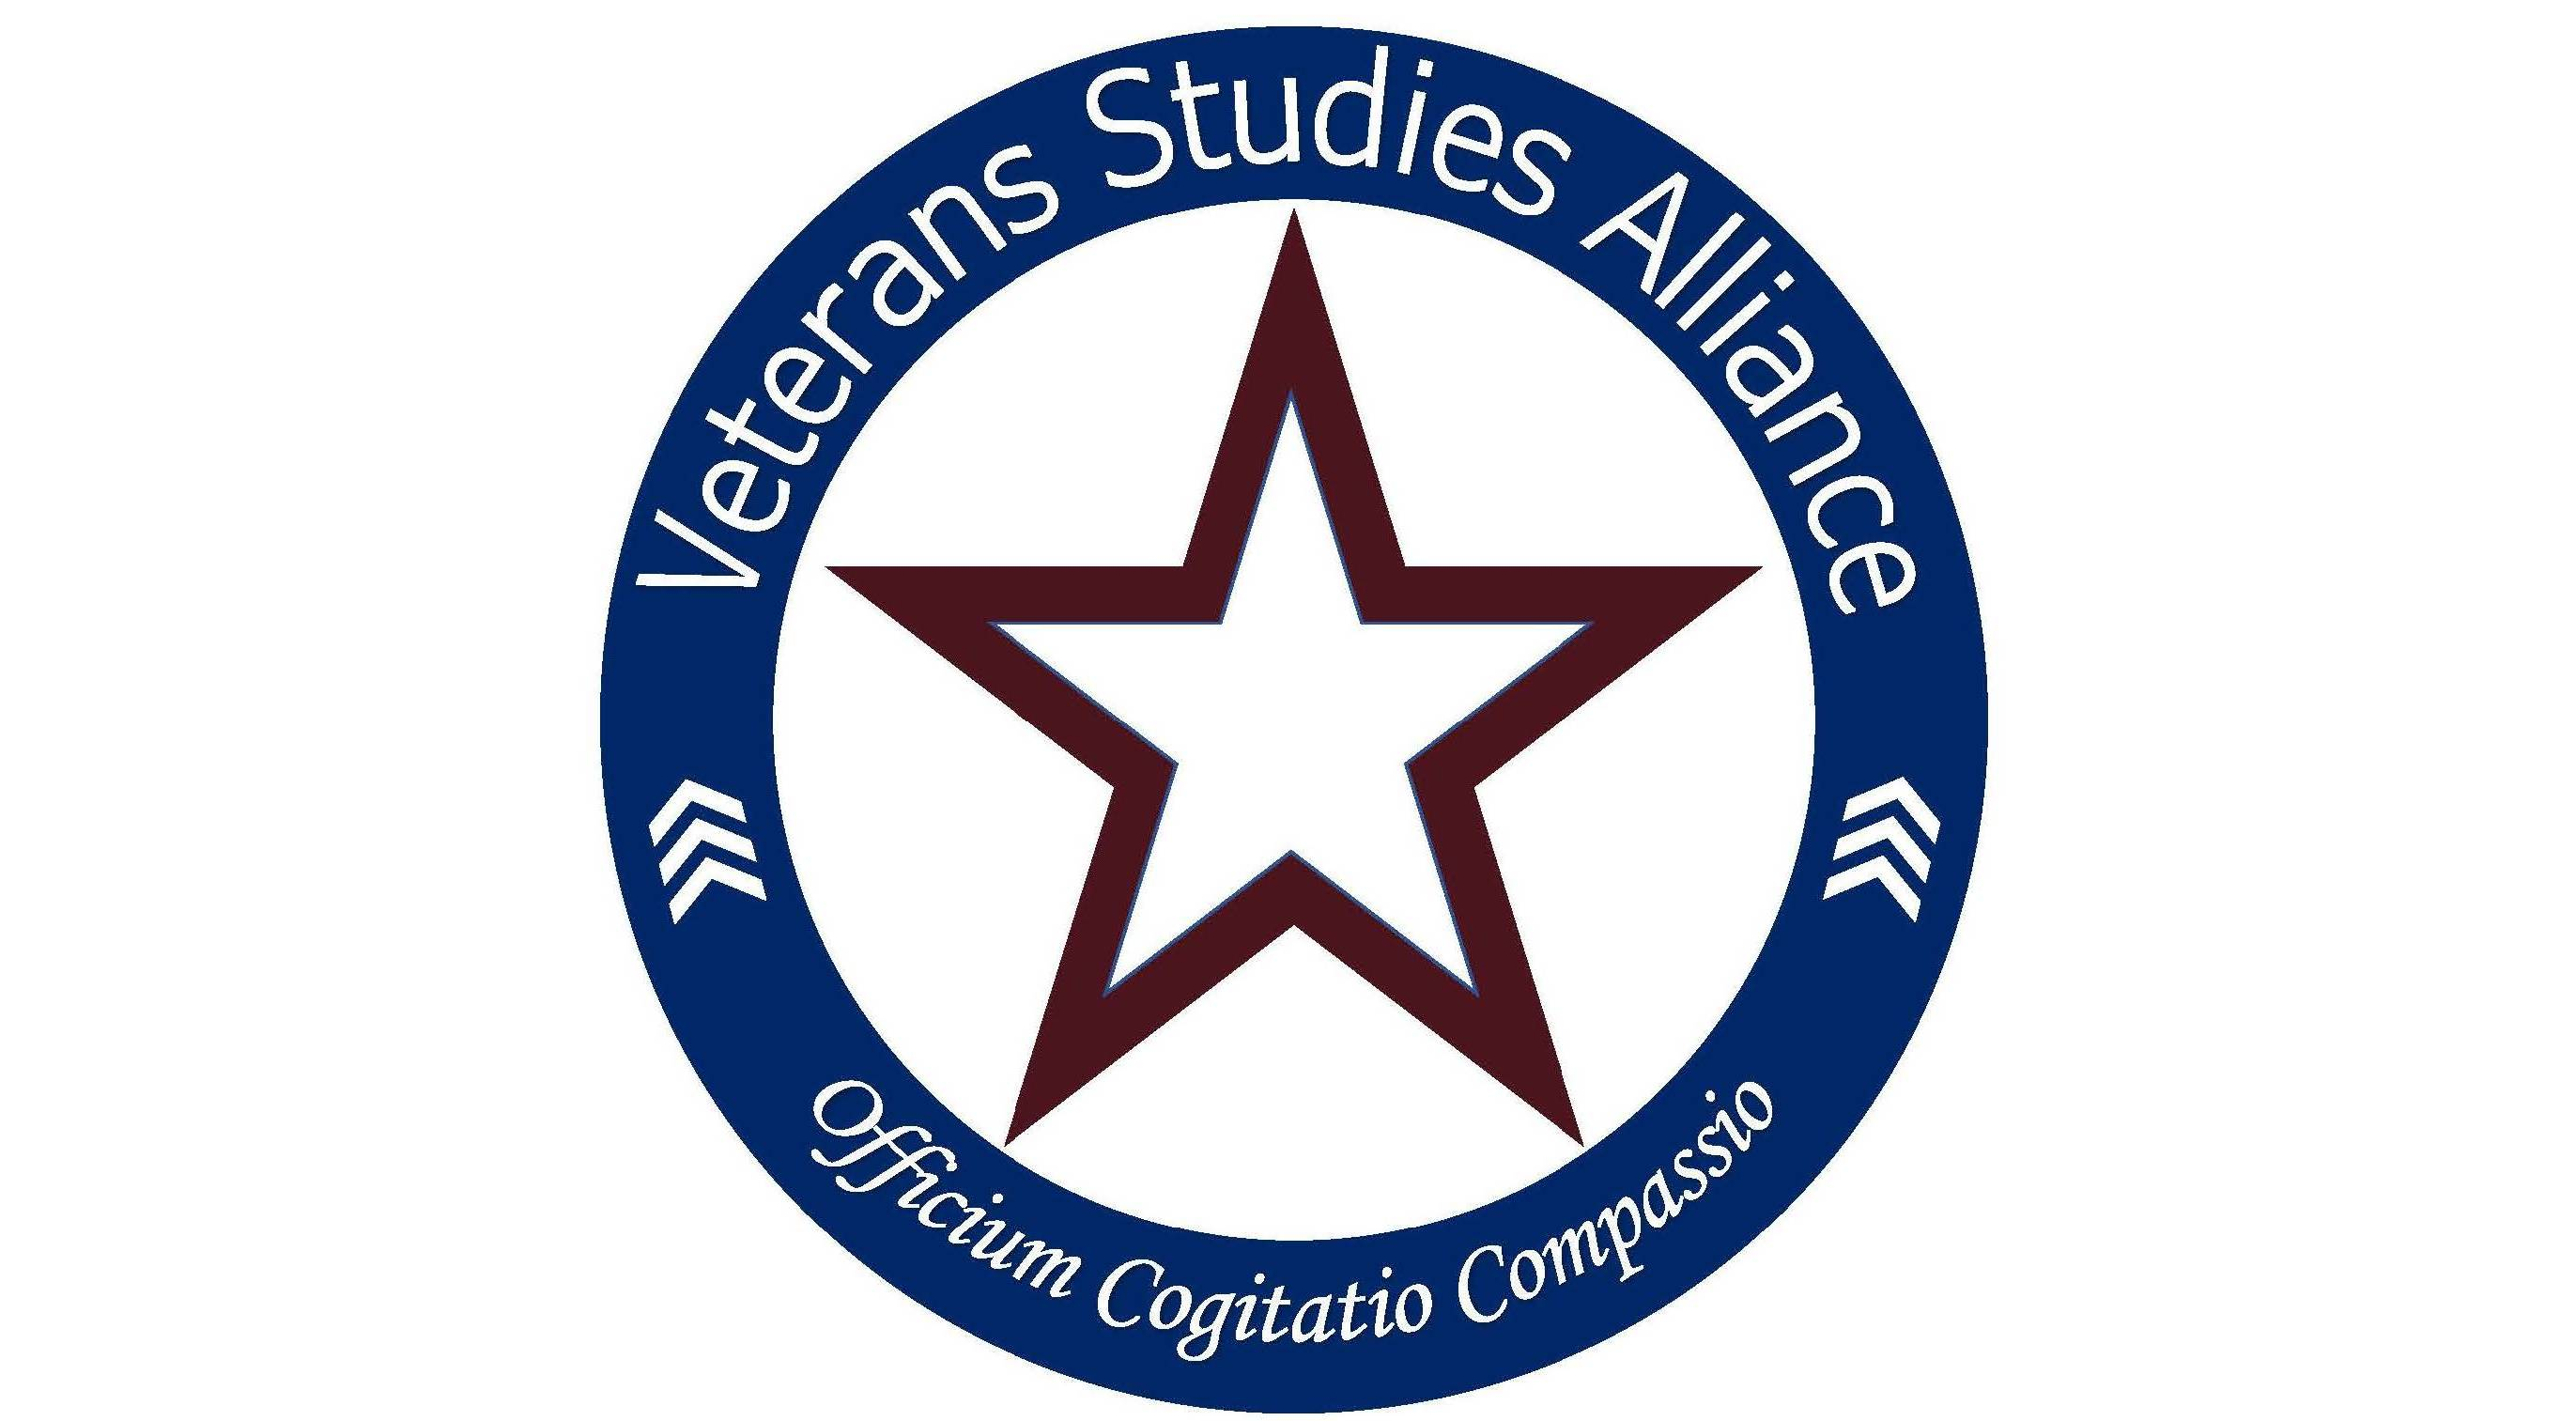 Veterans Studies Alliance Student Organization